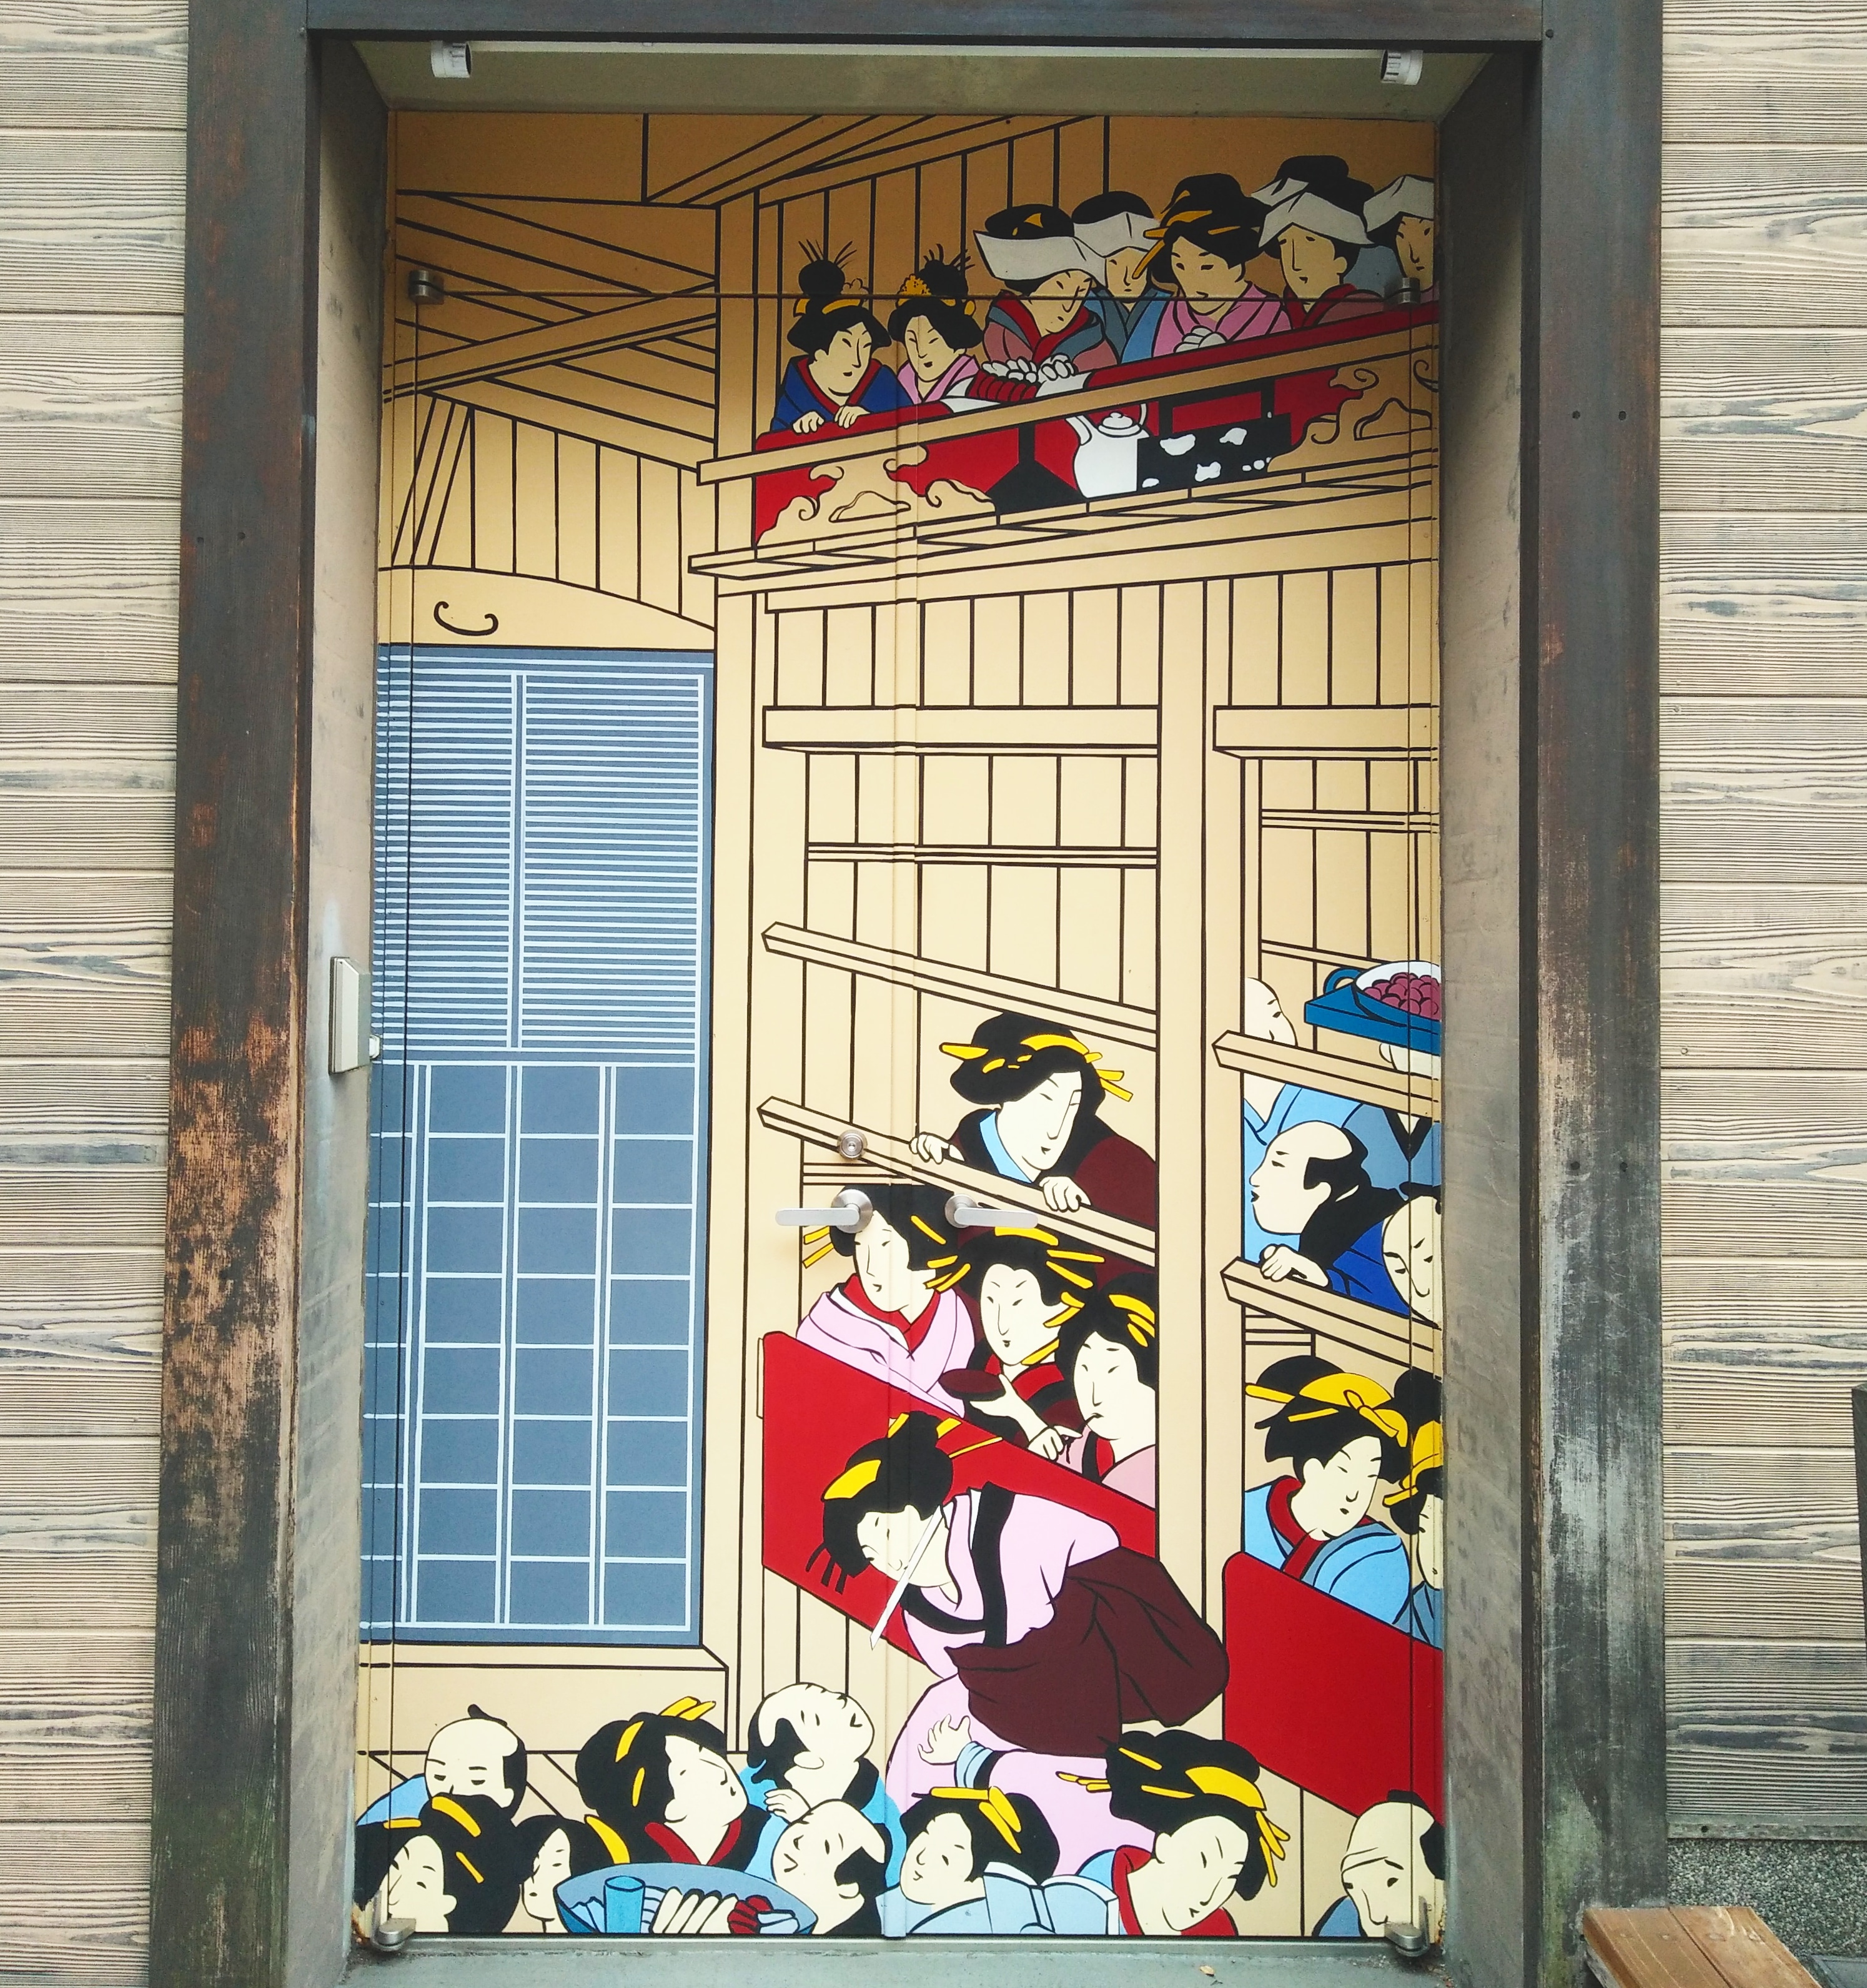 A picture of one of the wall paintings on a shop